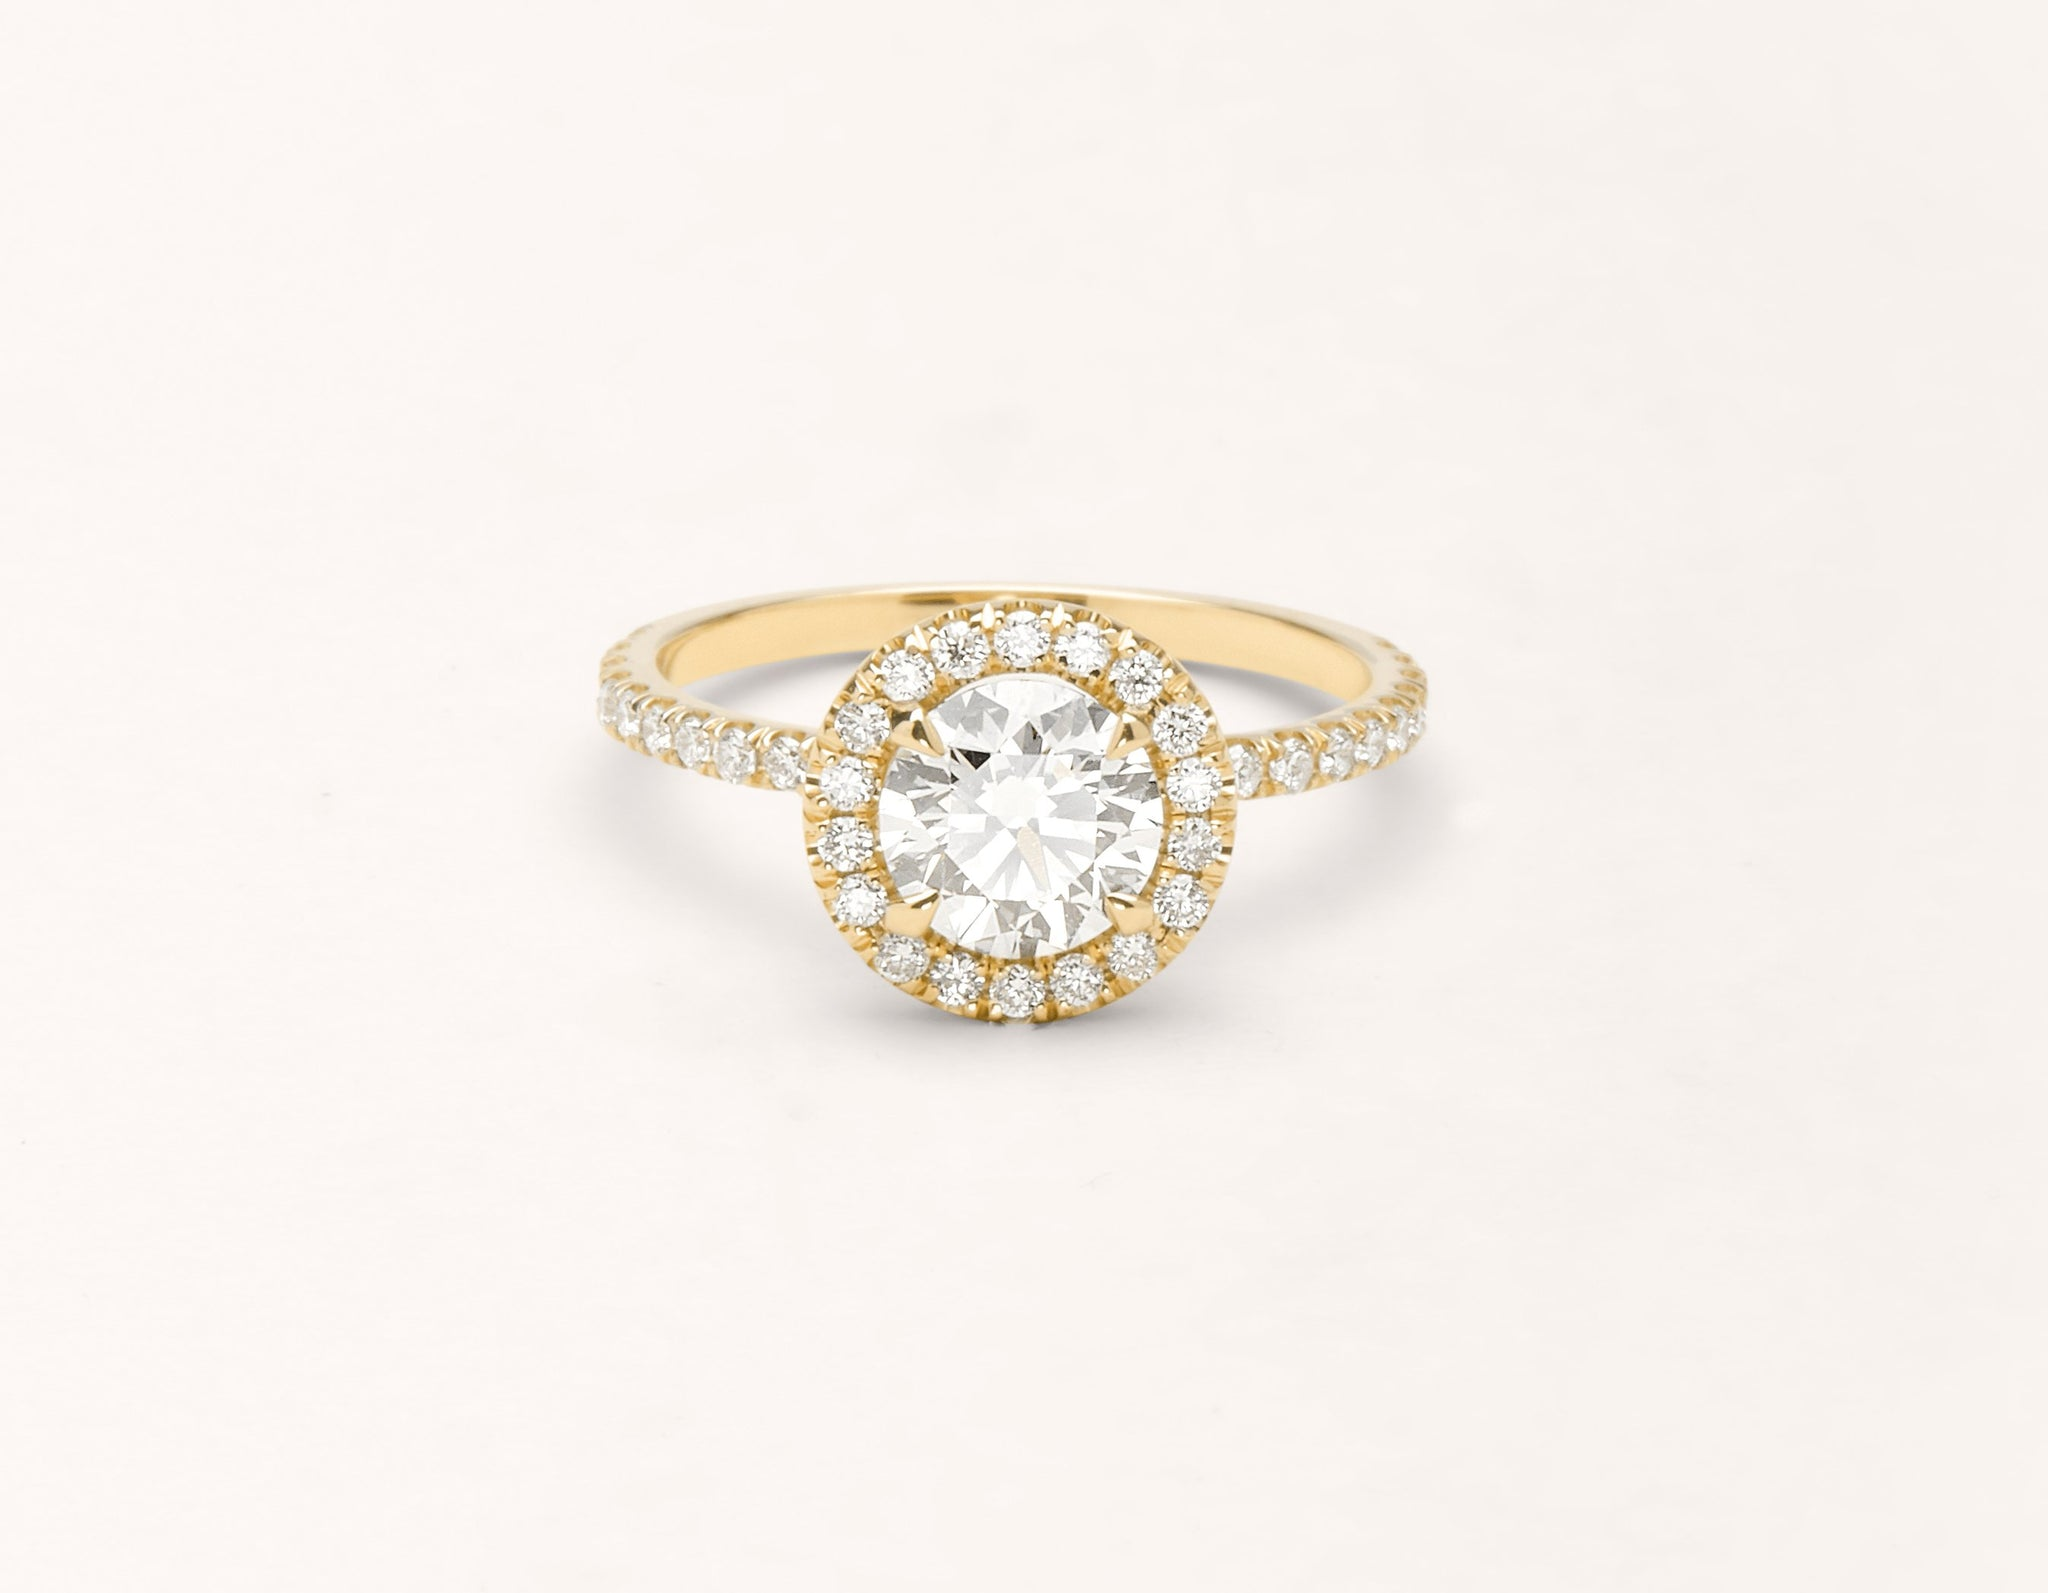 Minimalist 18k solid yellow gold The Halo pave engagement ring 1 ct round diamond Vrai and Oro